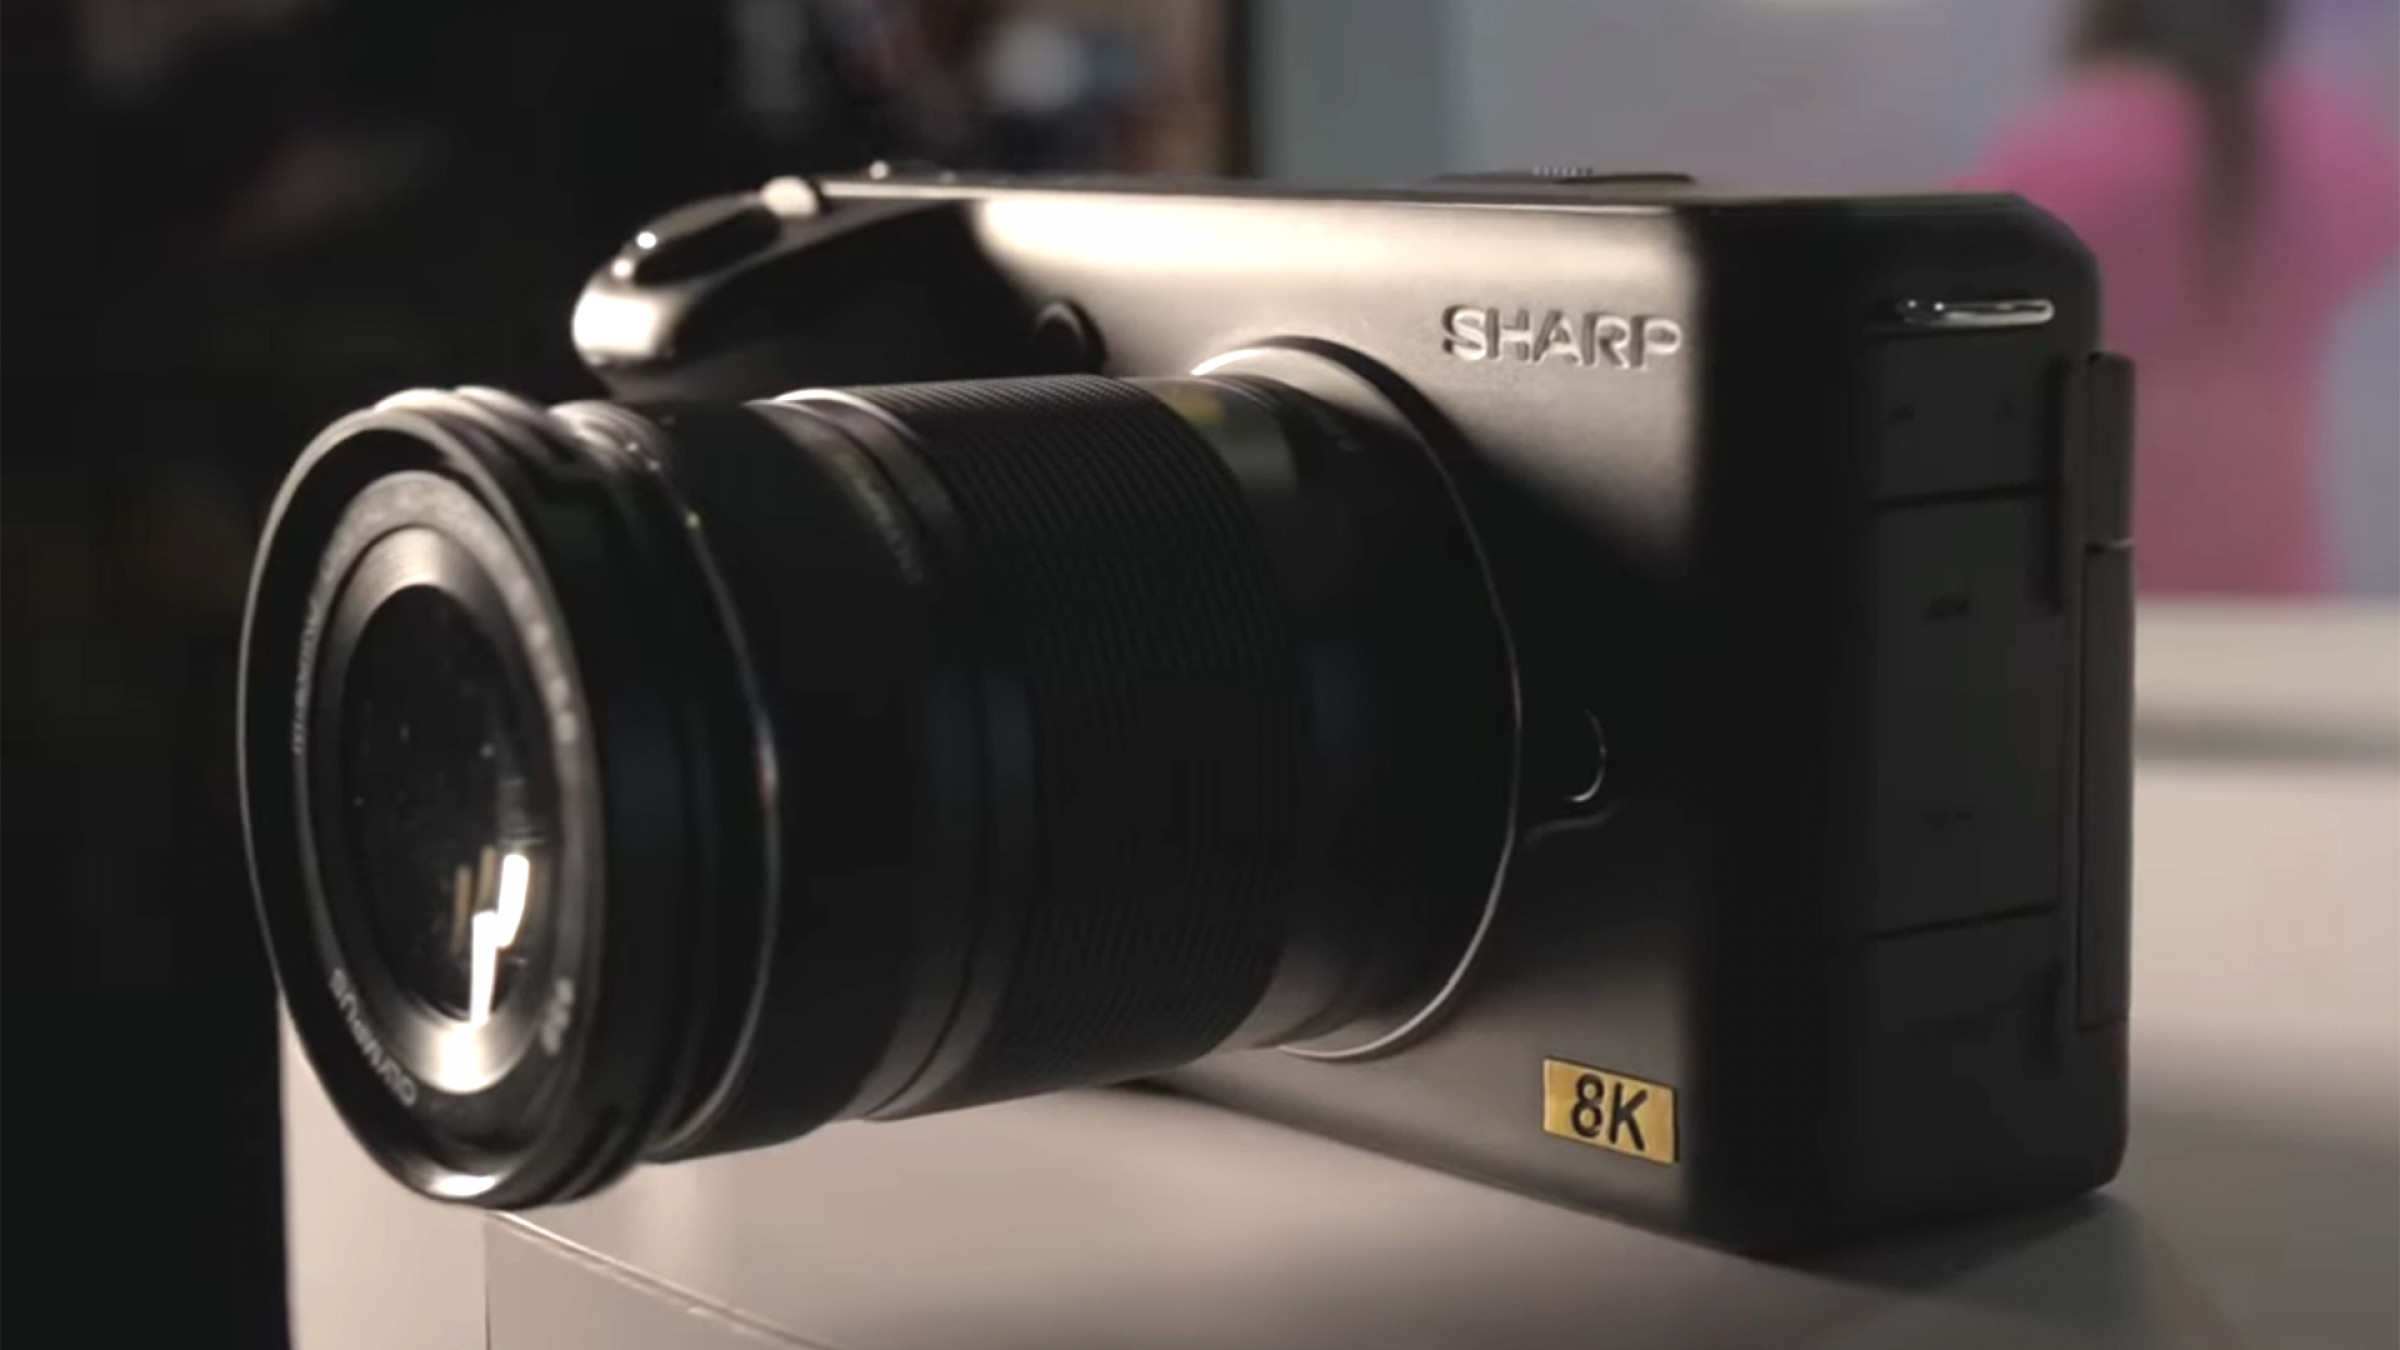 The Sharp 8K: Introducing the First 8K Prosumer Video Camera